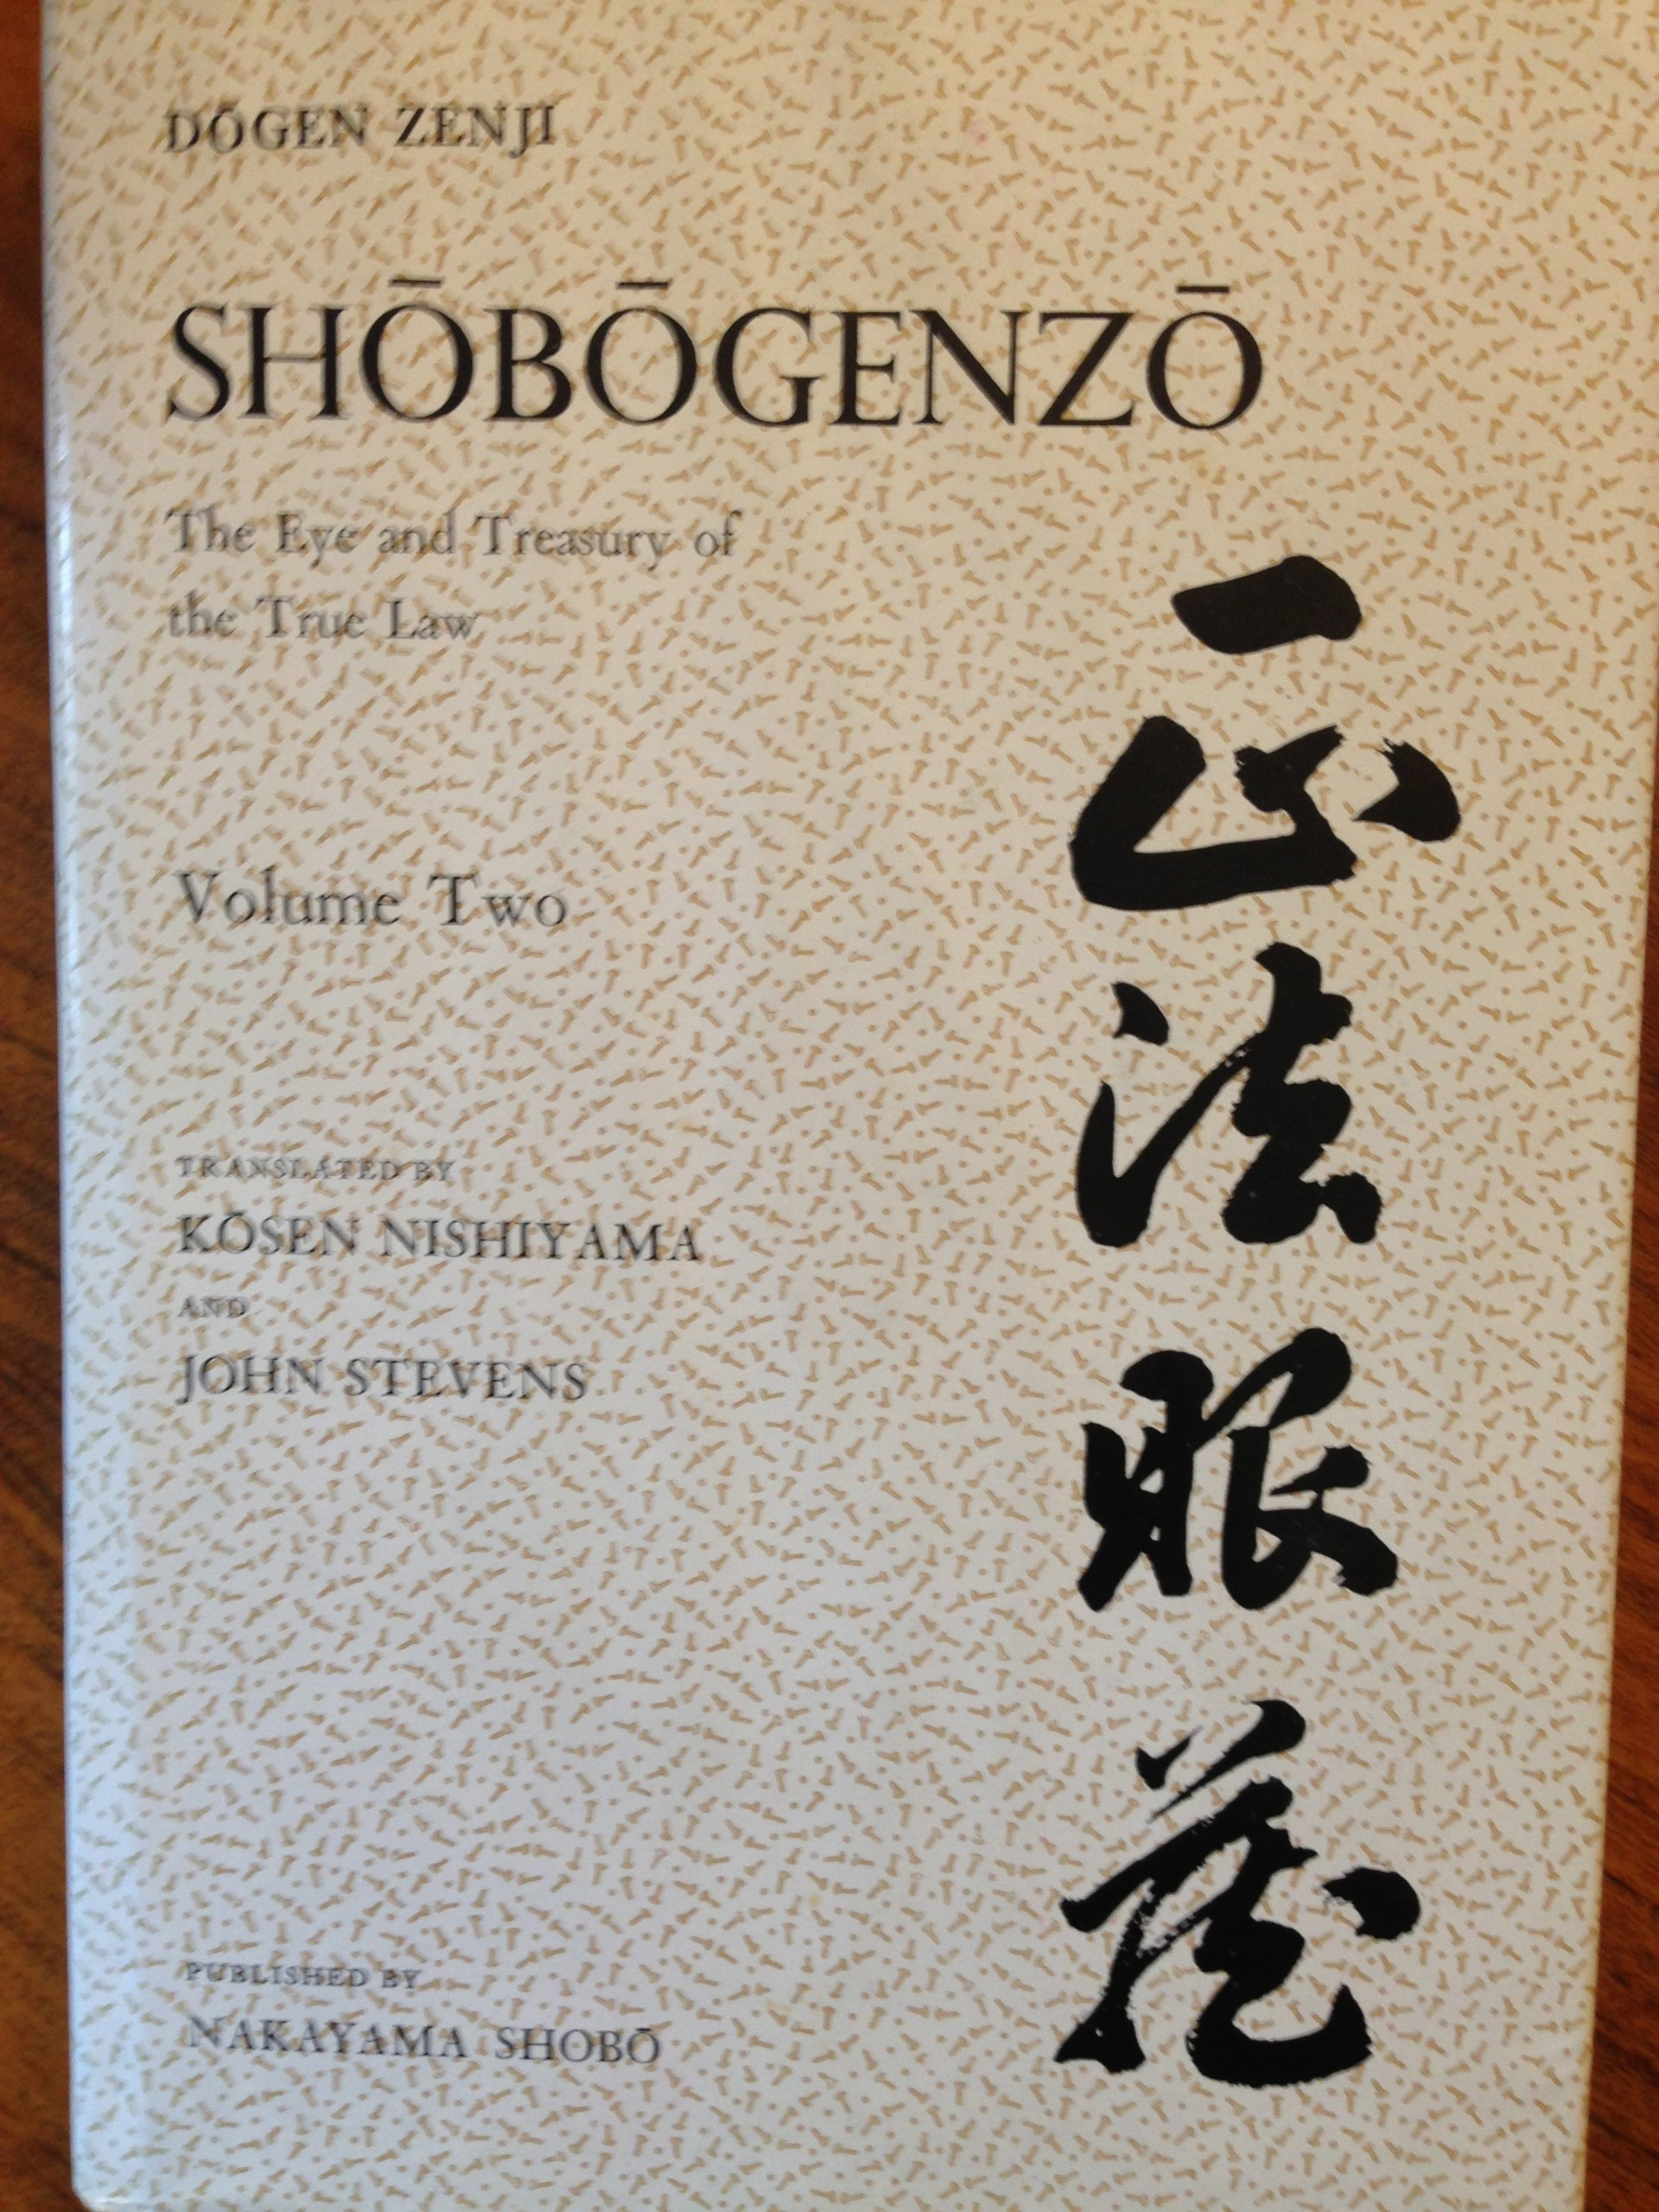 A complete English translation of Do?gen Zenji's Sho?bo?genzo? (the eye and treasury of the true law), Eihei Dogen